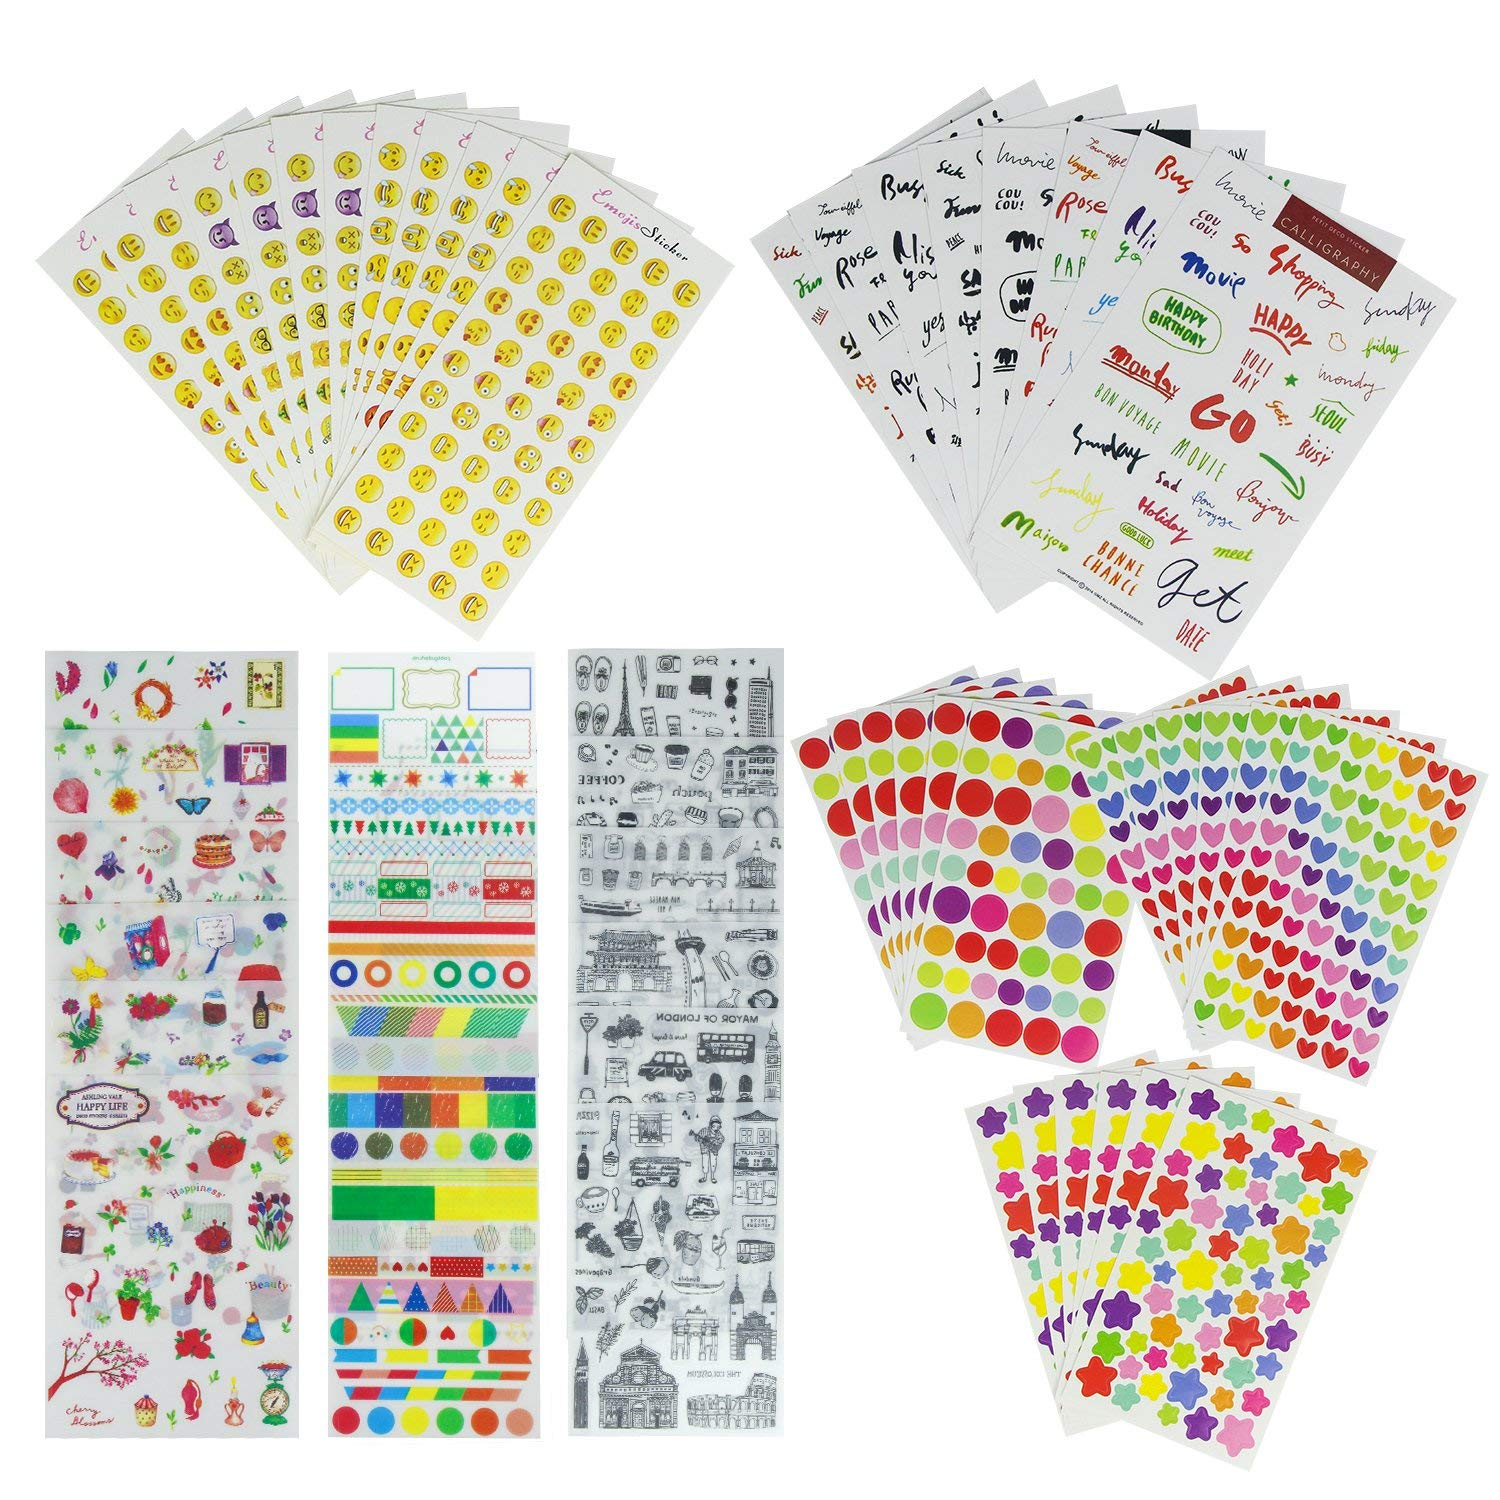 Bullet Journal & Planner Stickers Value Sheets (Assorted 2288 PCS, 56 Sheets) - Ideal Decorative Sticker Collection Sets for Scrapbooking, Cards, Calendars, Kids DIY Diary Arts Crafts, Album